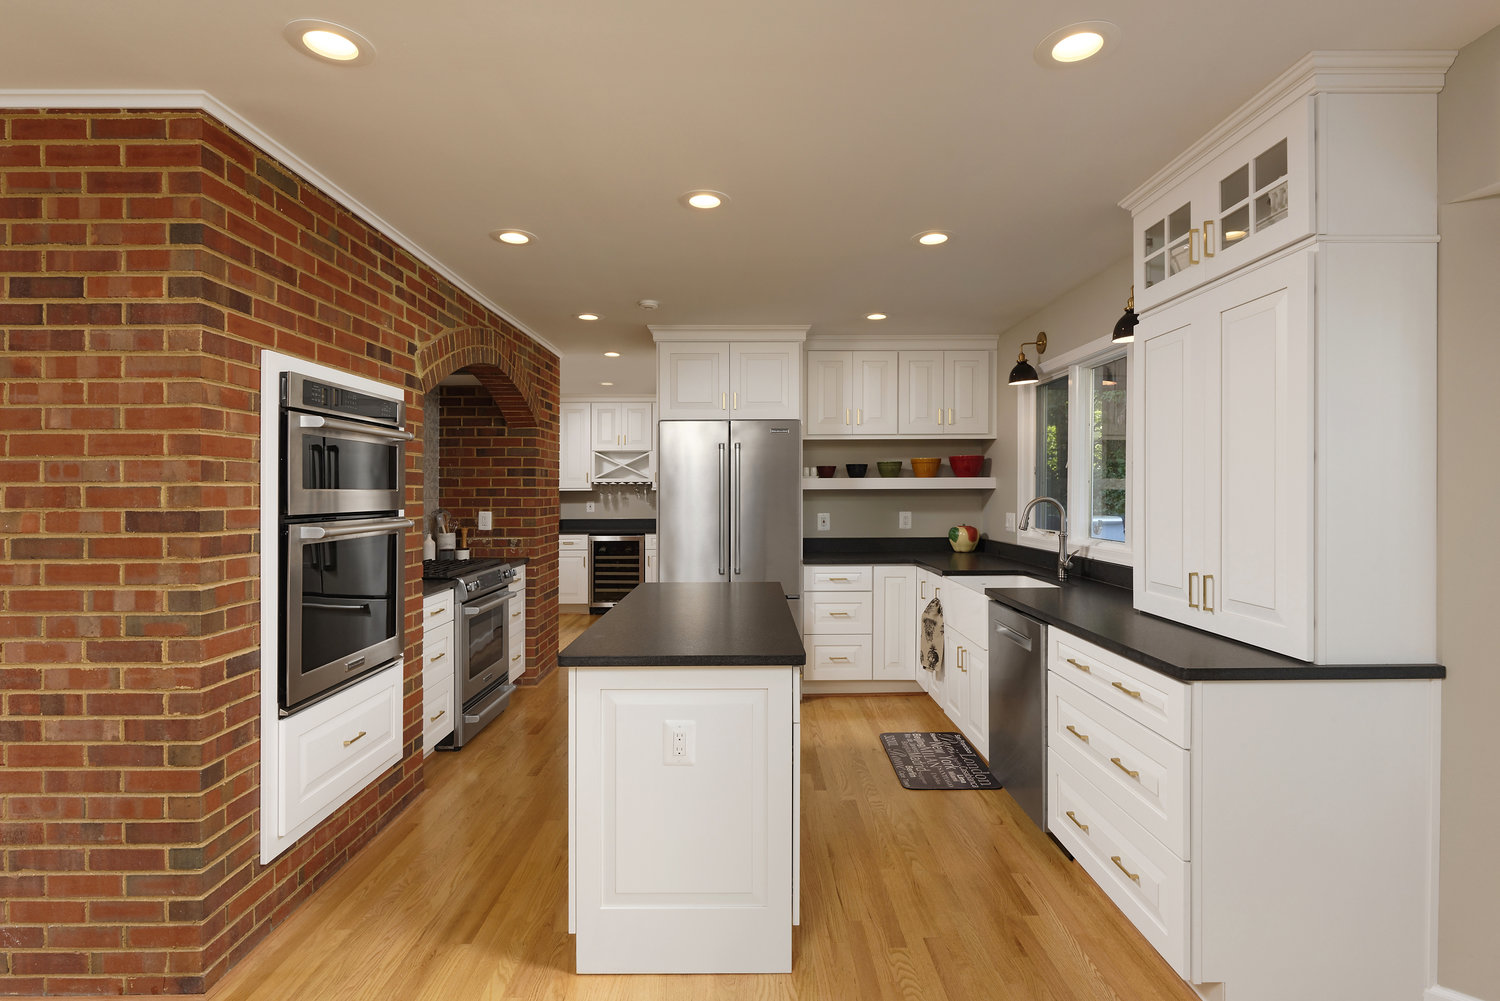 Image of kitchen where the owners chose home flooring in wood